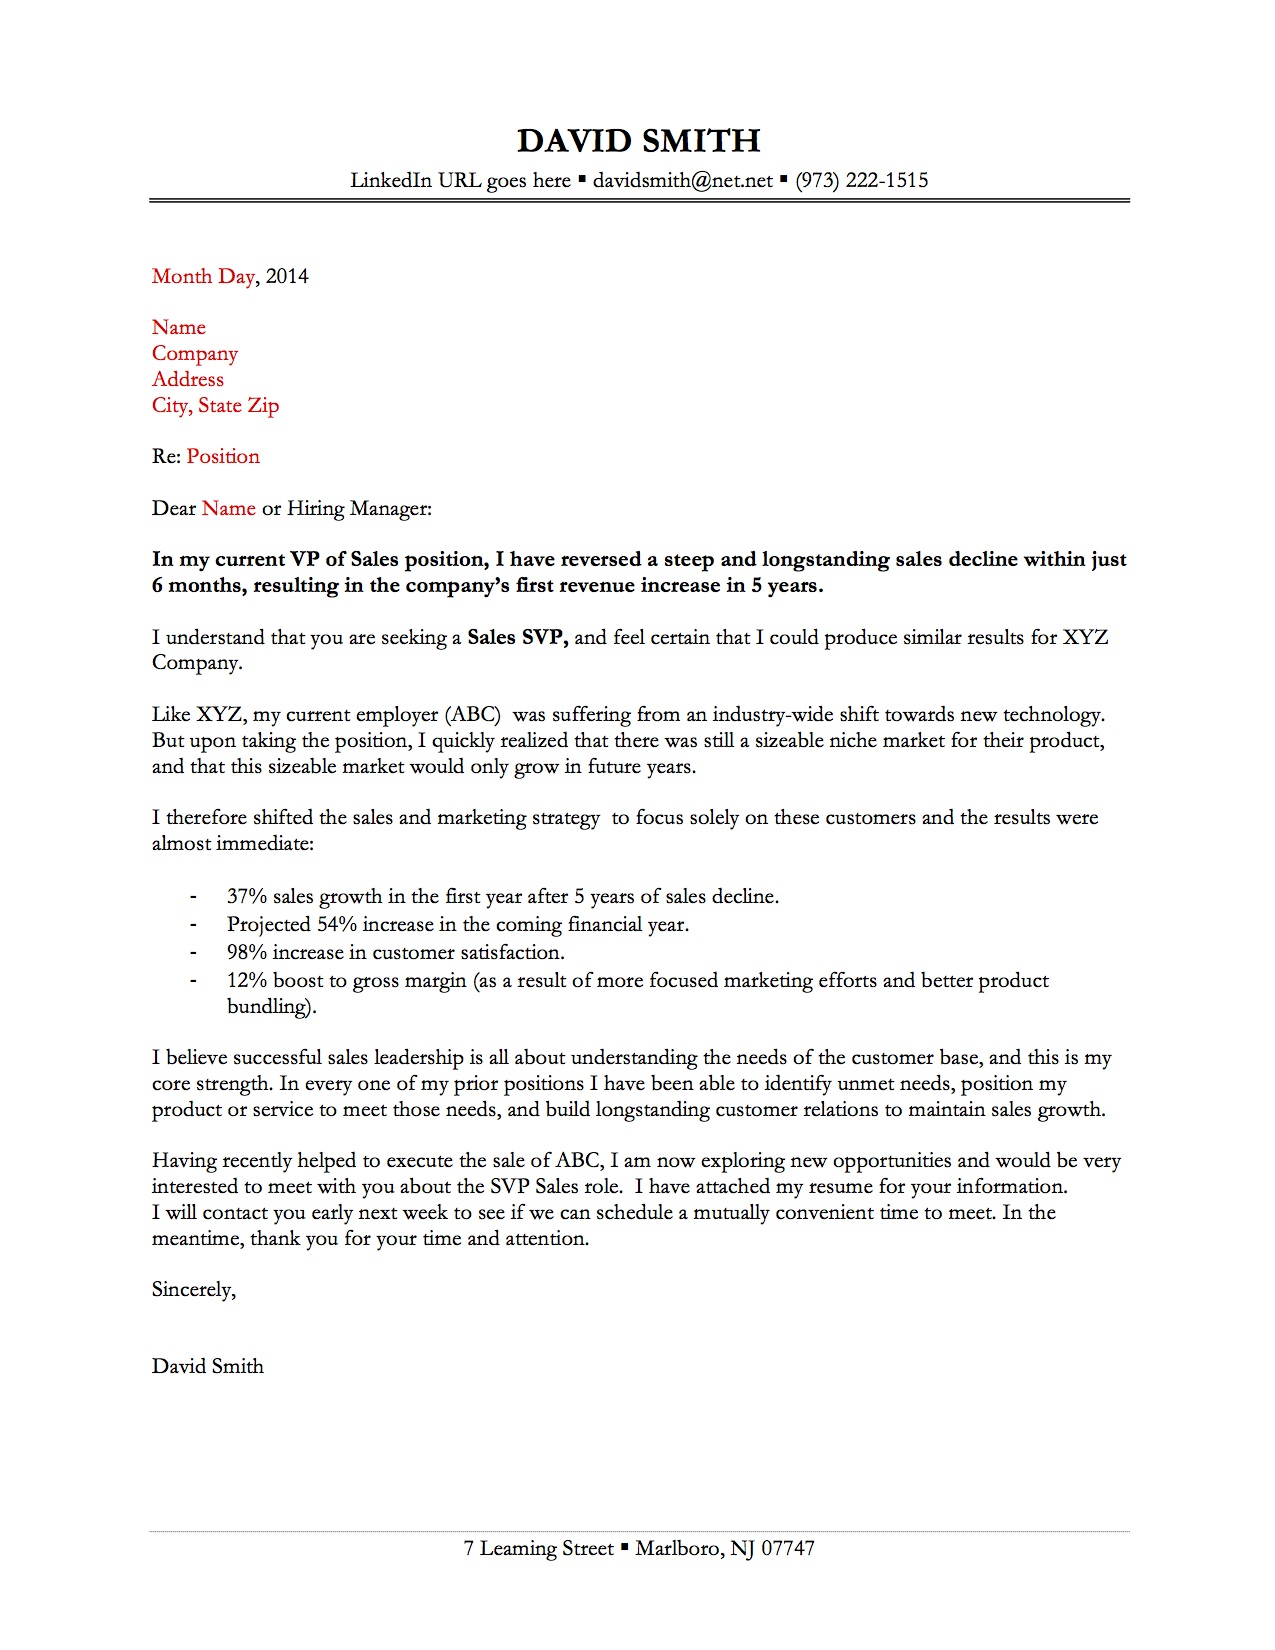 Cover Letter Sales Manager Position Sample Pinterest  Cover Letter For Sales